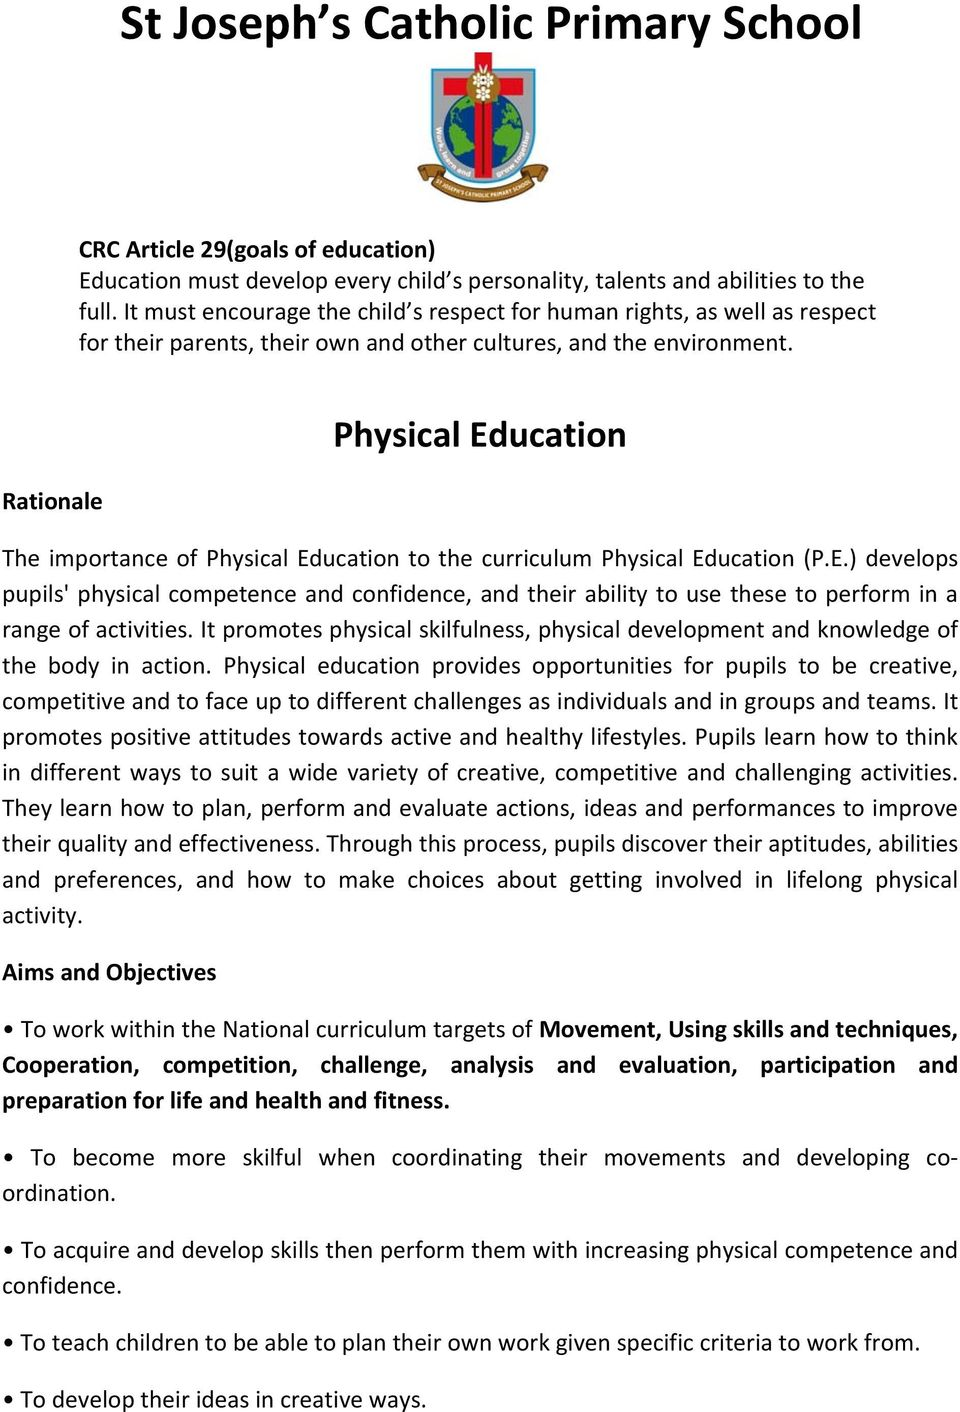 Rationale Physical Education The importance of Physical Education to the curriculum Physical Education (P.E.) develops pupils' physical competence and confidence, and their ability to use these to perform in a range of activities.